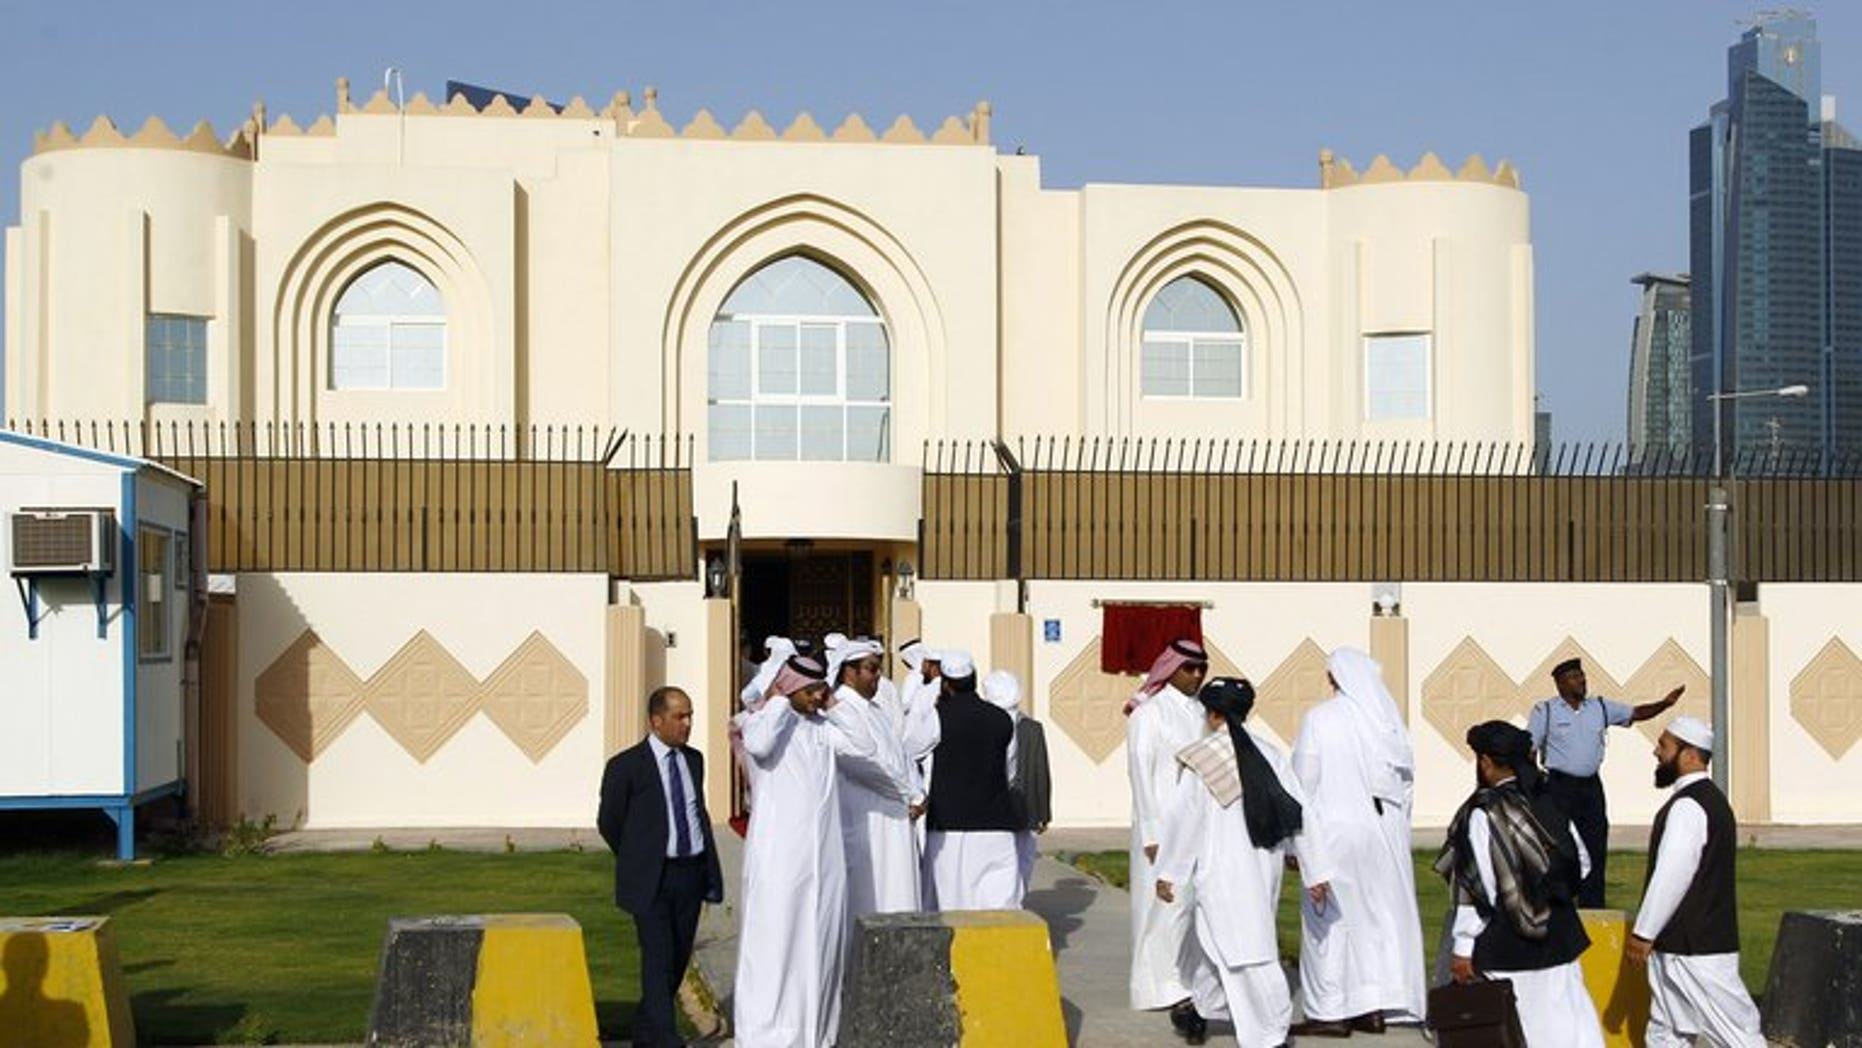 """Guests arrive for the opening ceremony of the new Taliban political office in Doha on June 18, 2013. The Taliban office opened in Doha to facilitate peace talks does not carry the name of the """"Islamic Emirate of Afghanistan,"""" as it appeared earlier, Qatar said on Wednesday."""